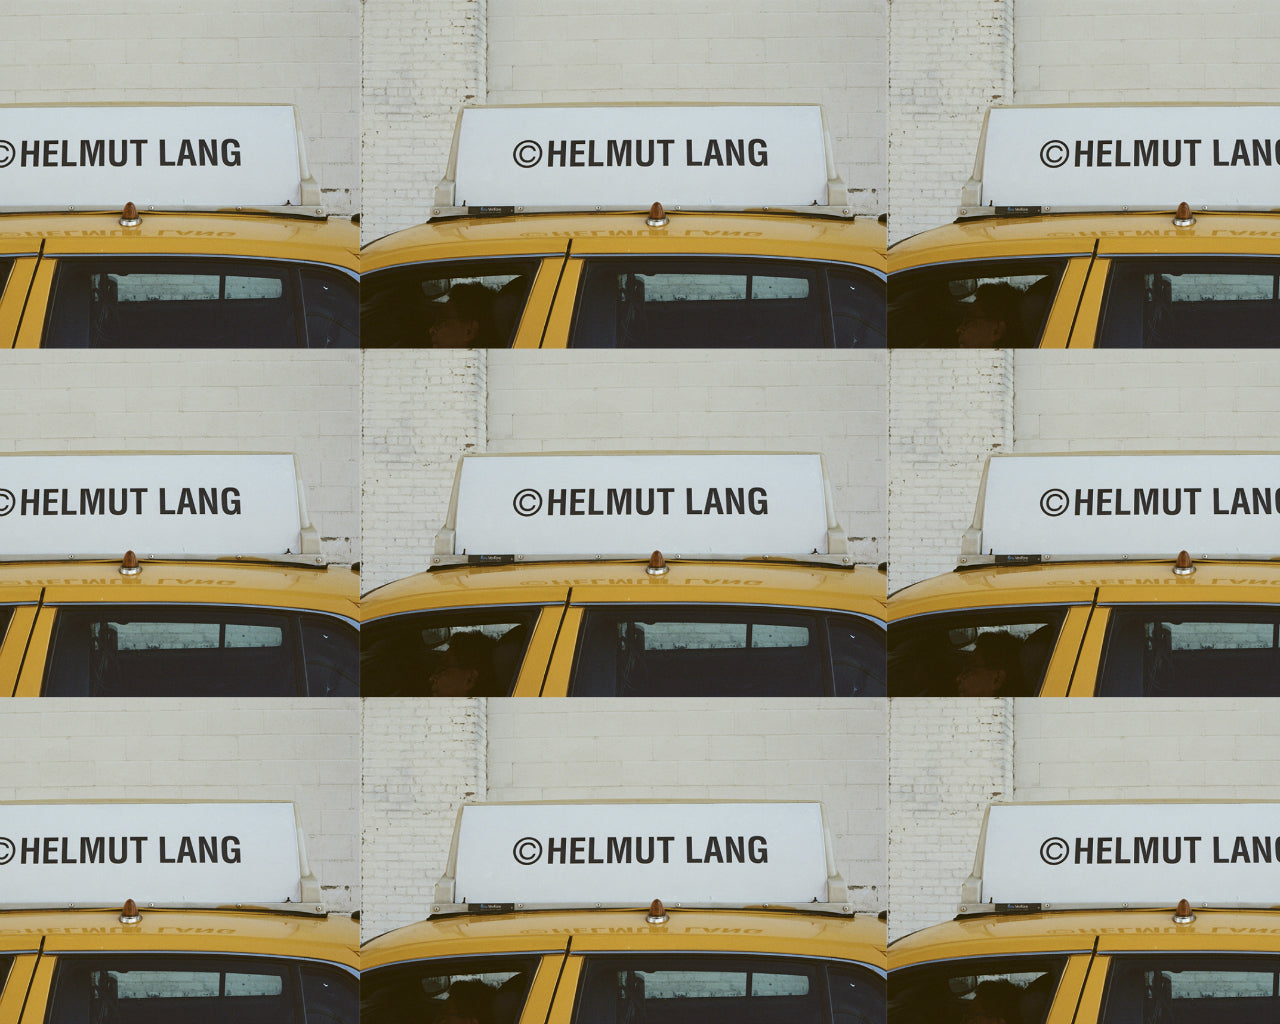 017 Feature | Helmut Lang Taxi